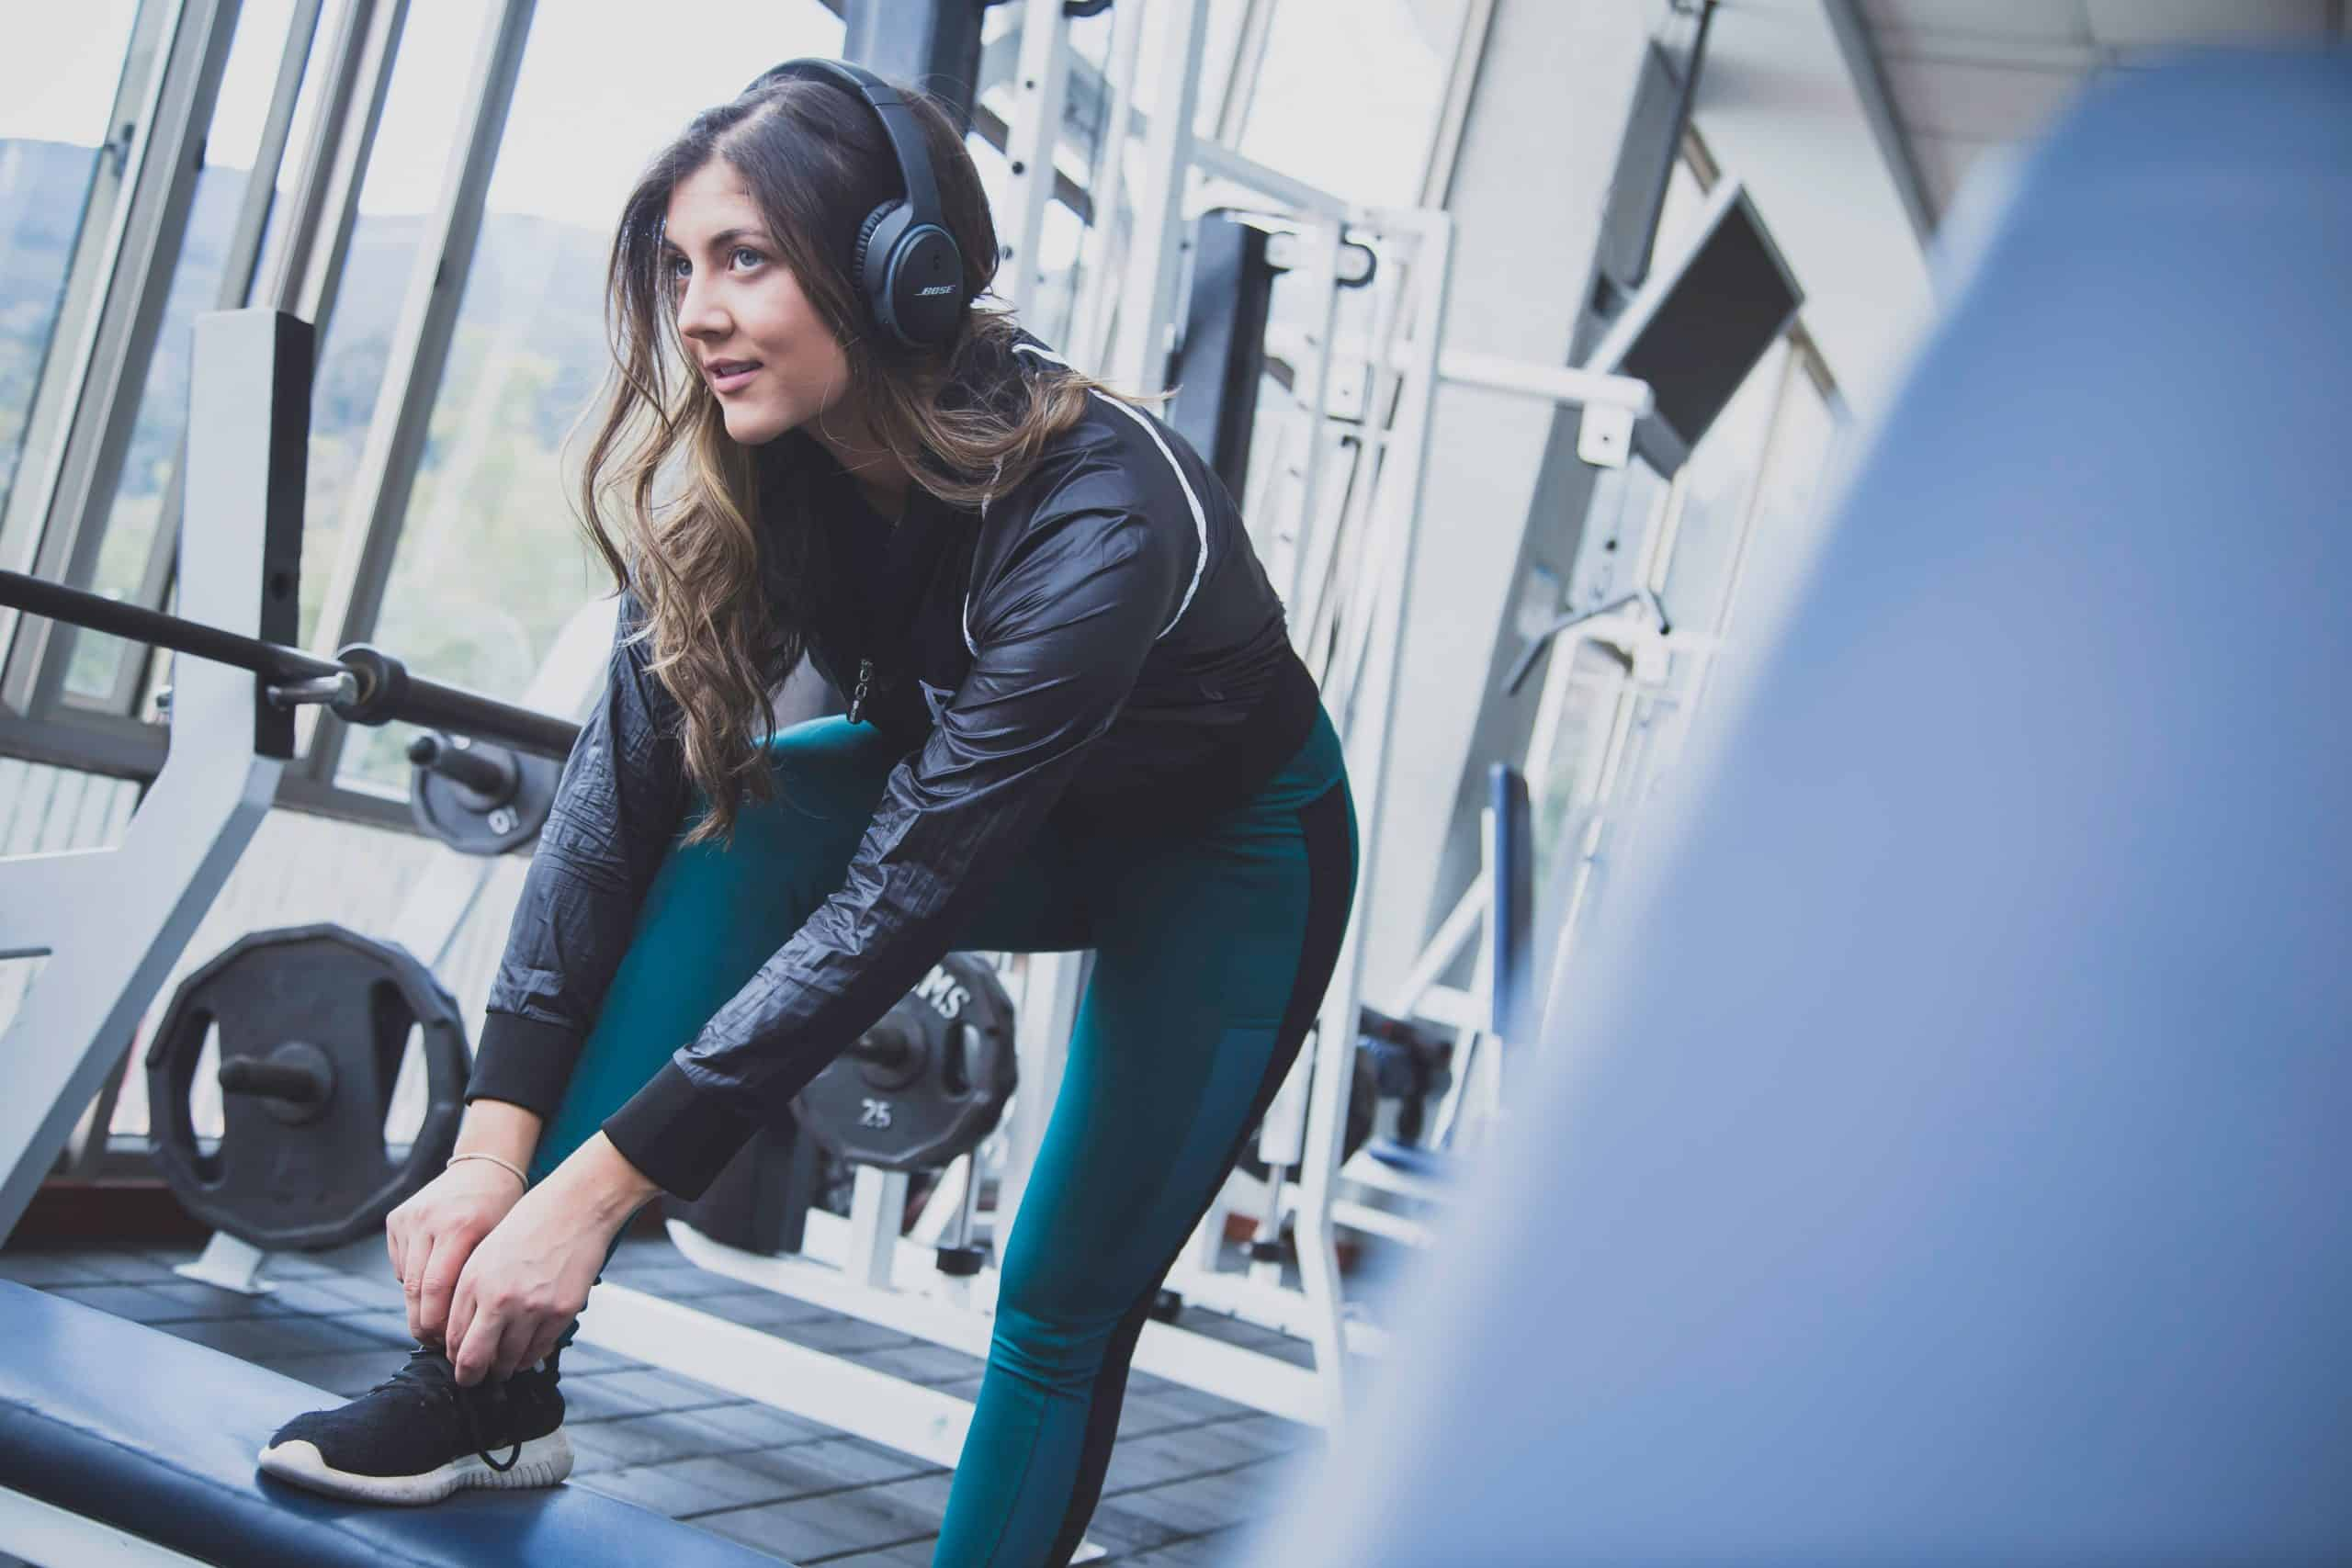 Healthy Life Gym: Some Advantages